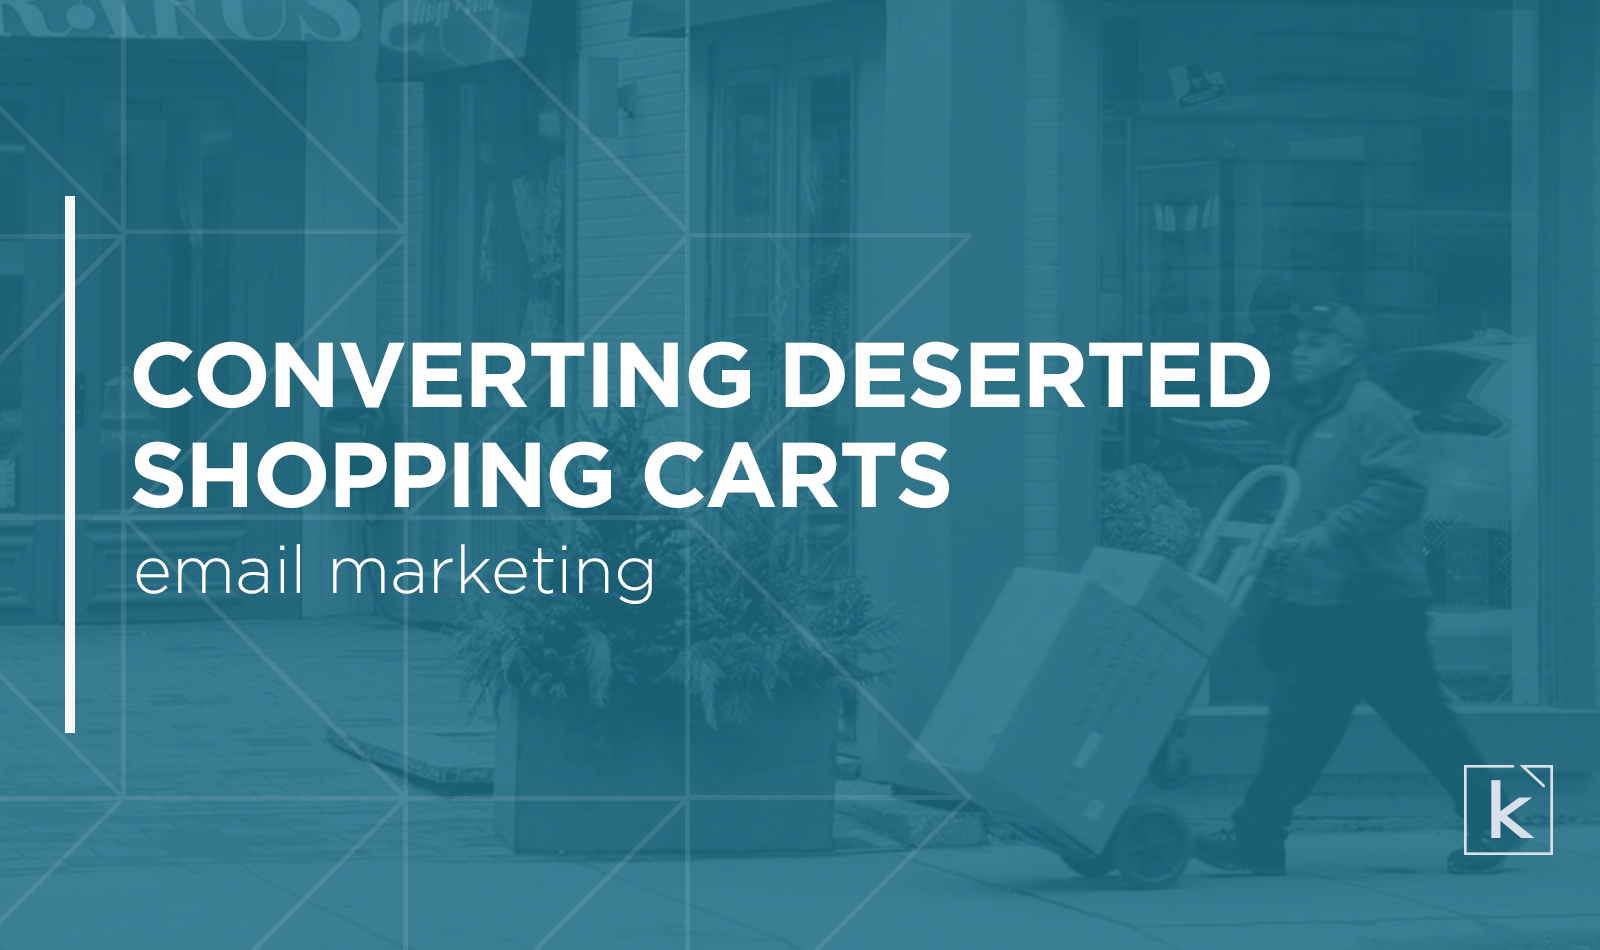 converting-deserted-shopping-carts-email-marketing